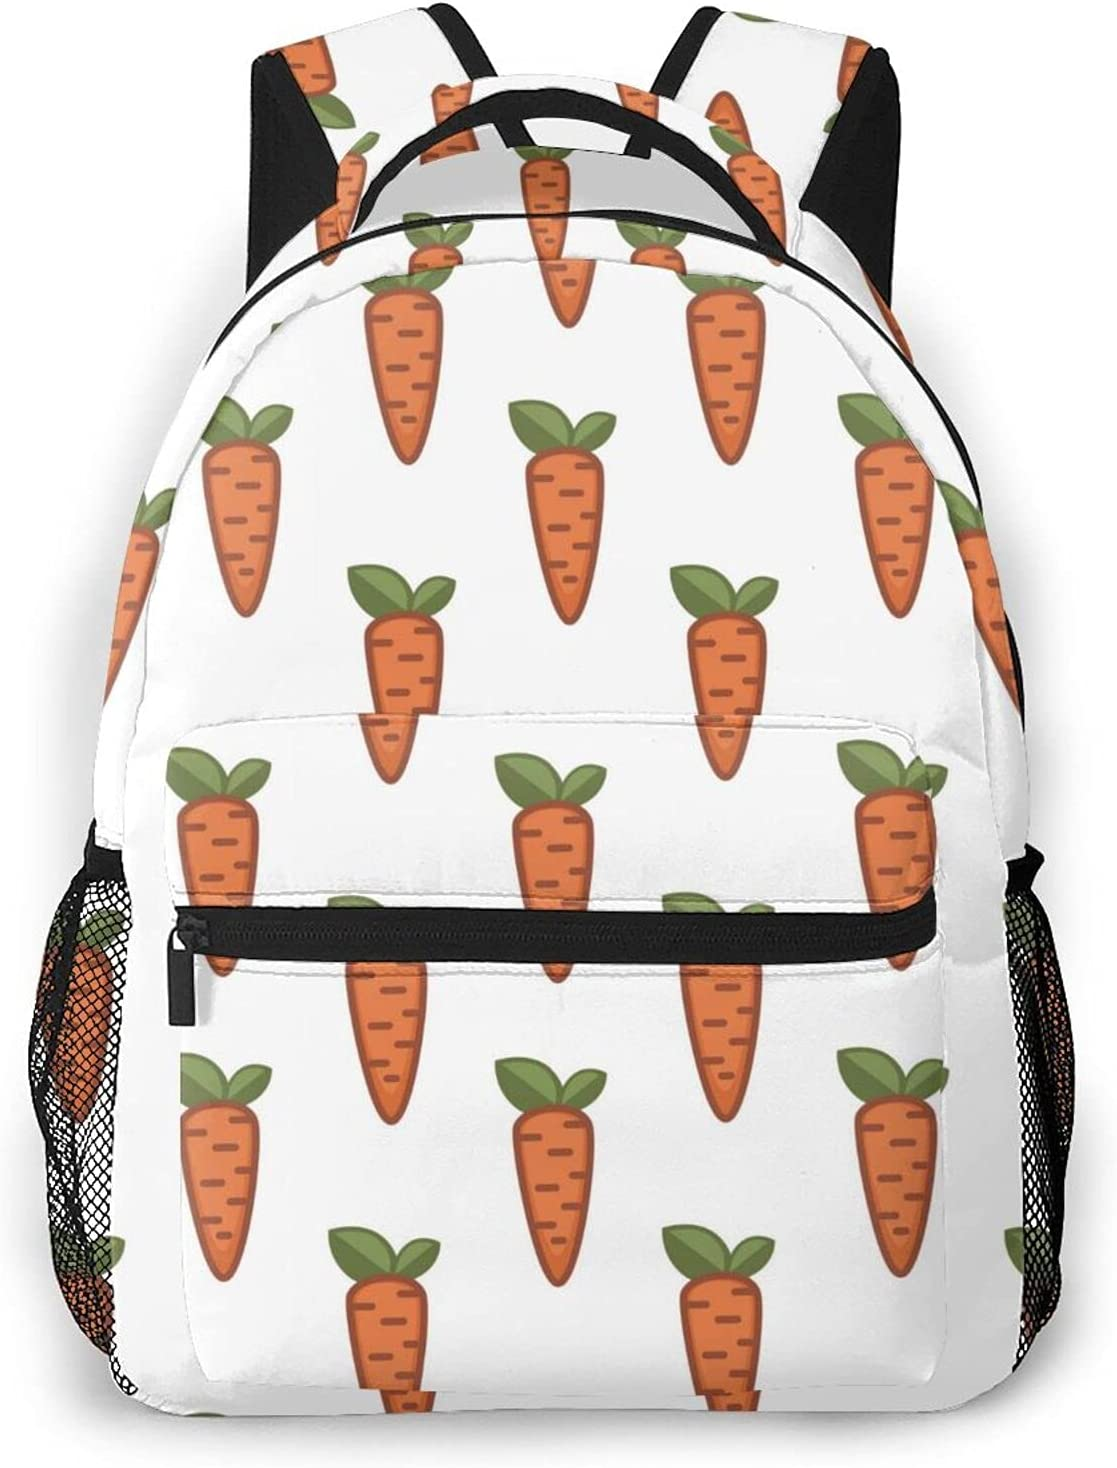 Max 77% OFF Farm Food Carrot Travel Daypack Student Laptop Rucksack Backpack Rapid rise